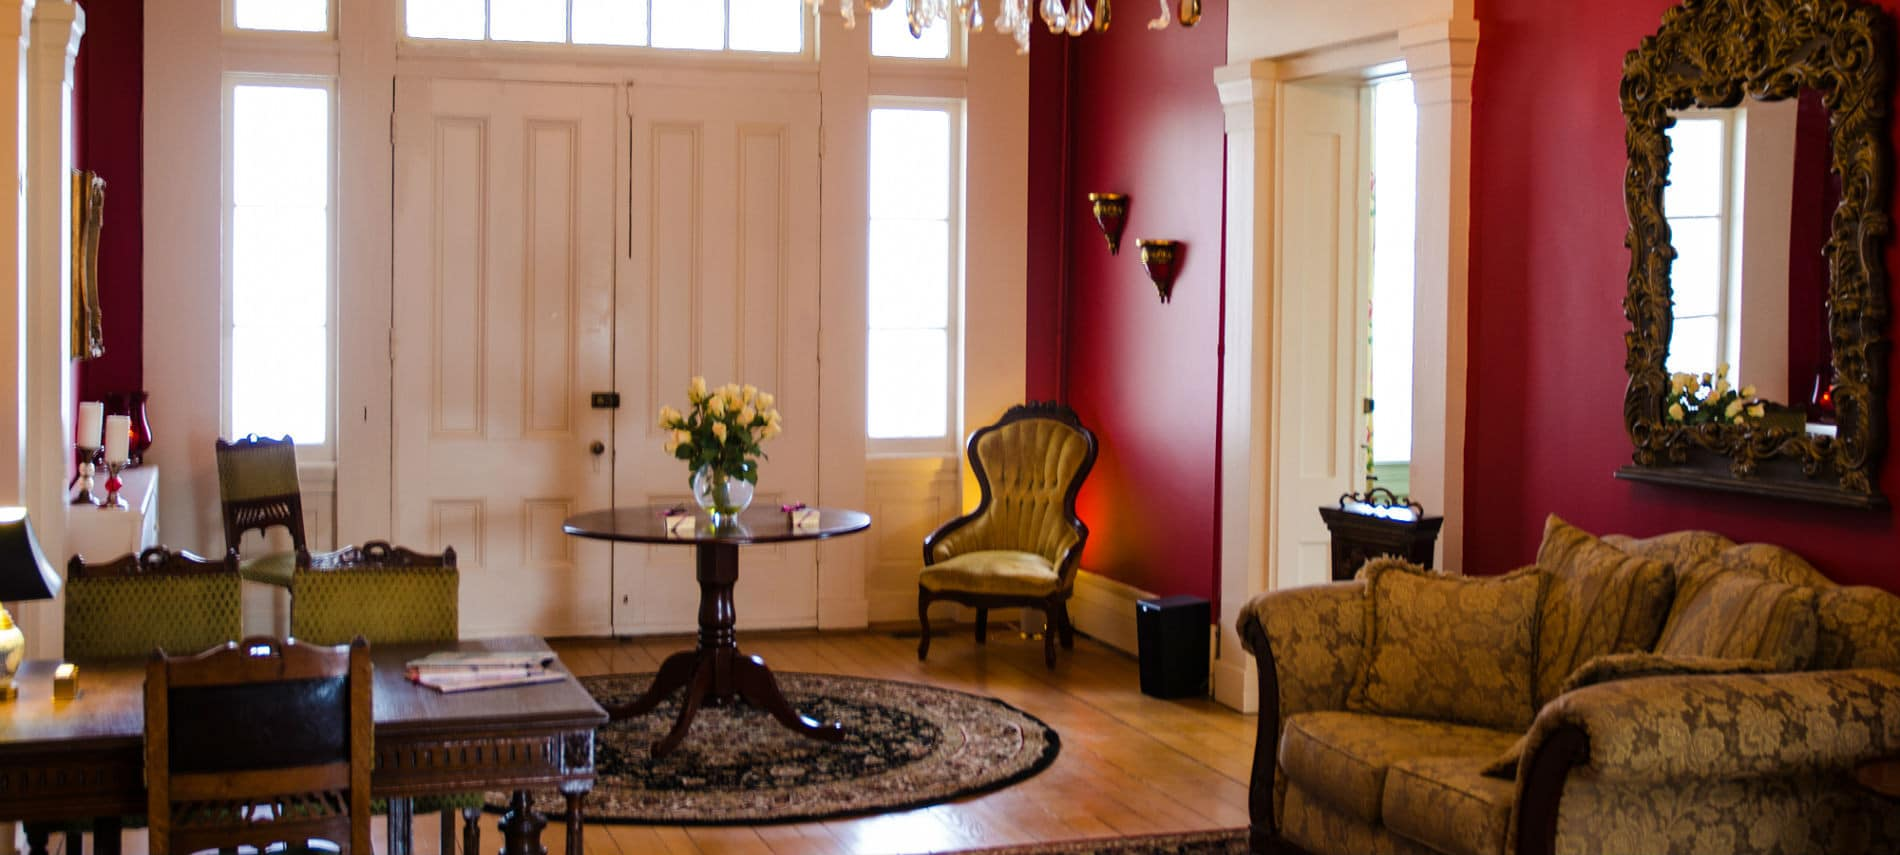 Gorgeous grand entryway with double doors, vaulted ceiling, scarlet walls, crystal chandelier and antique furnishings